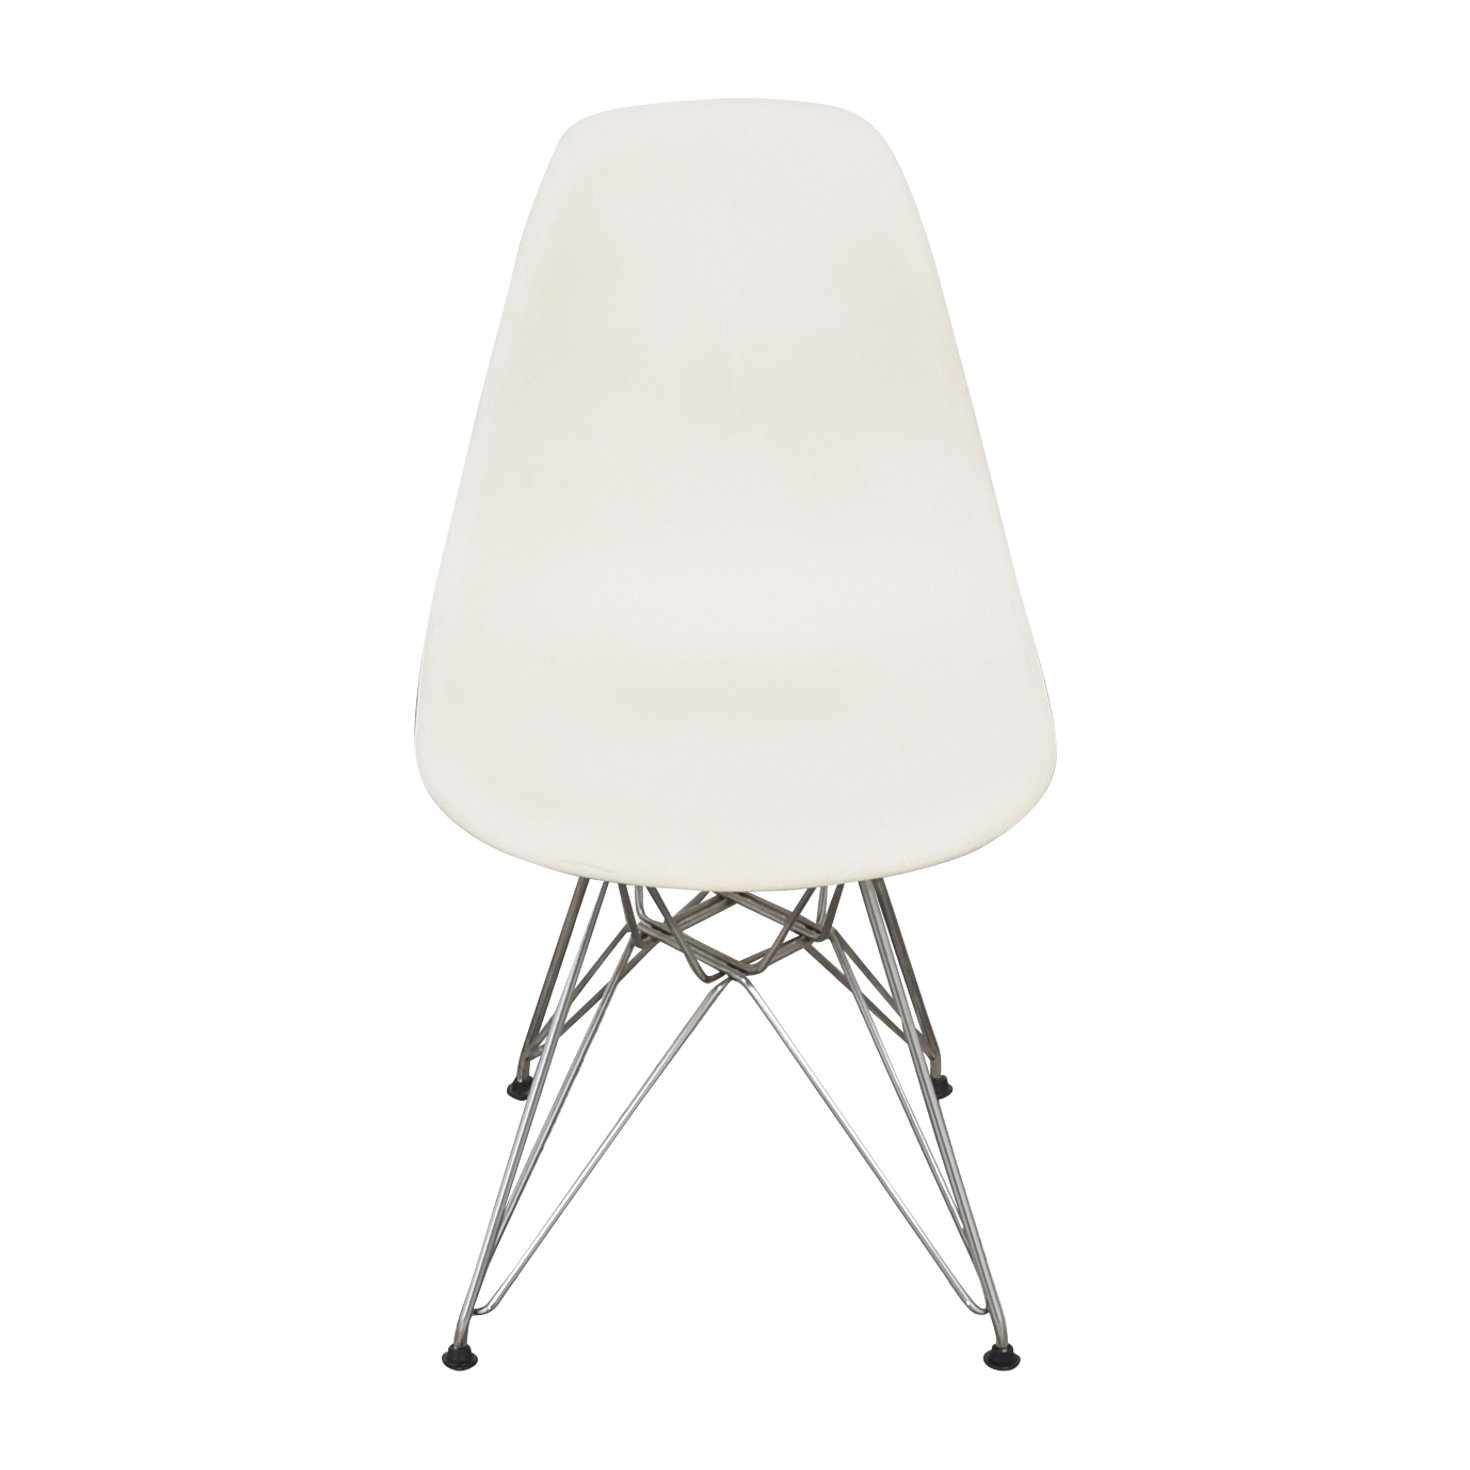 Herman Miller Herman Miller Eames Molded Plastic Dining Chair with Wire Base coupon